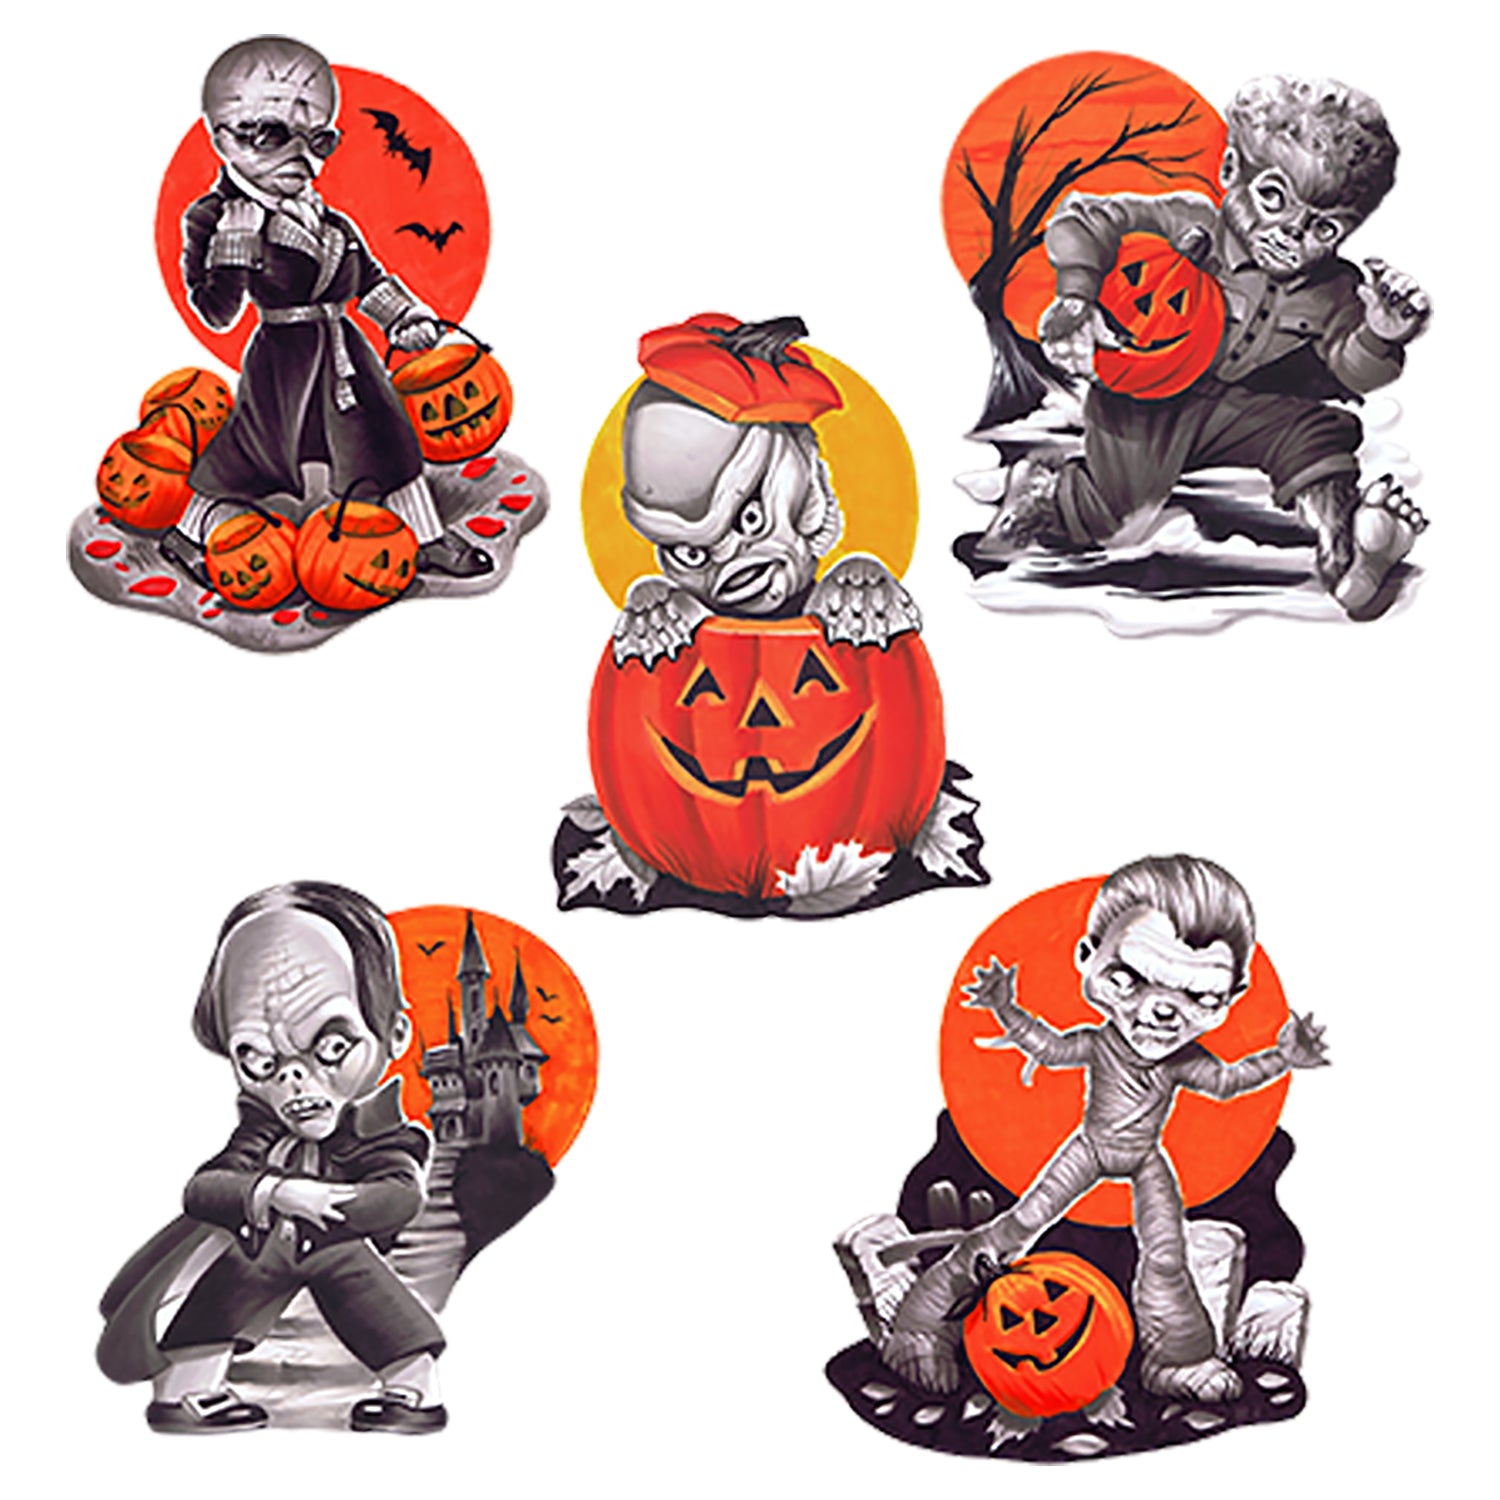 Trick Or Treat Universal Monster Wall Decor